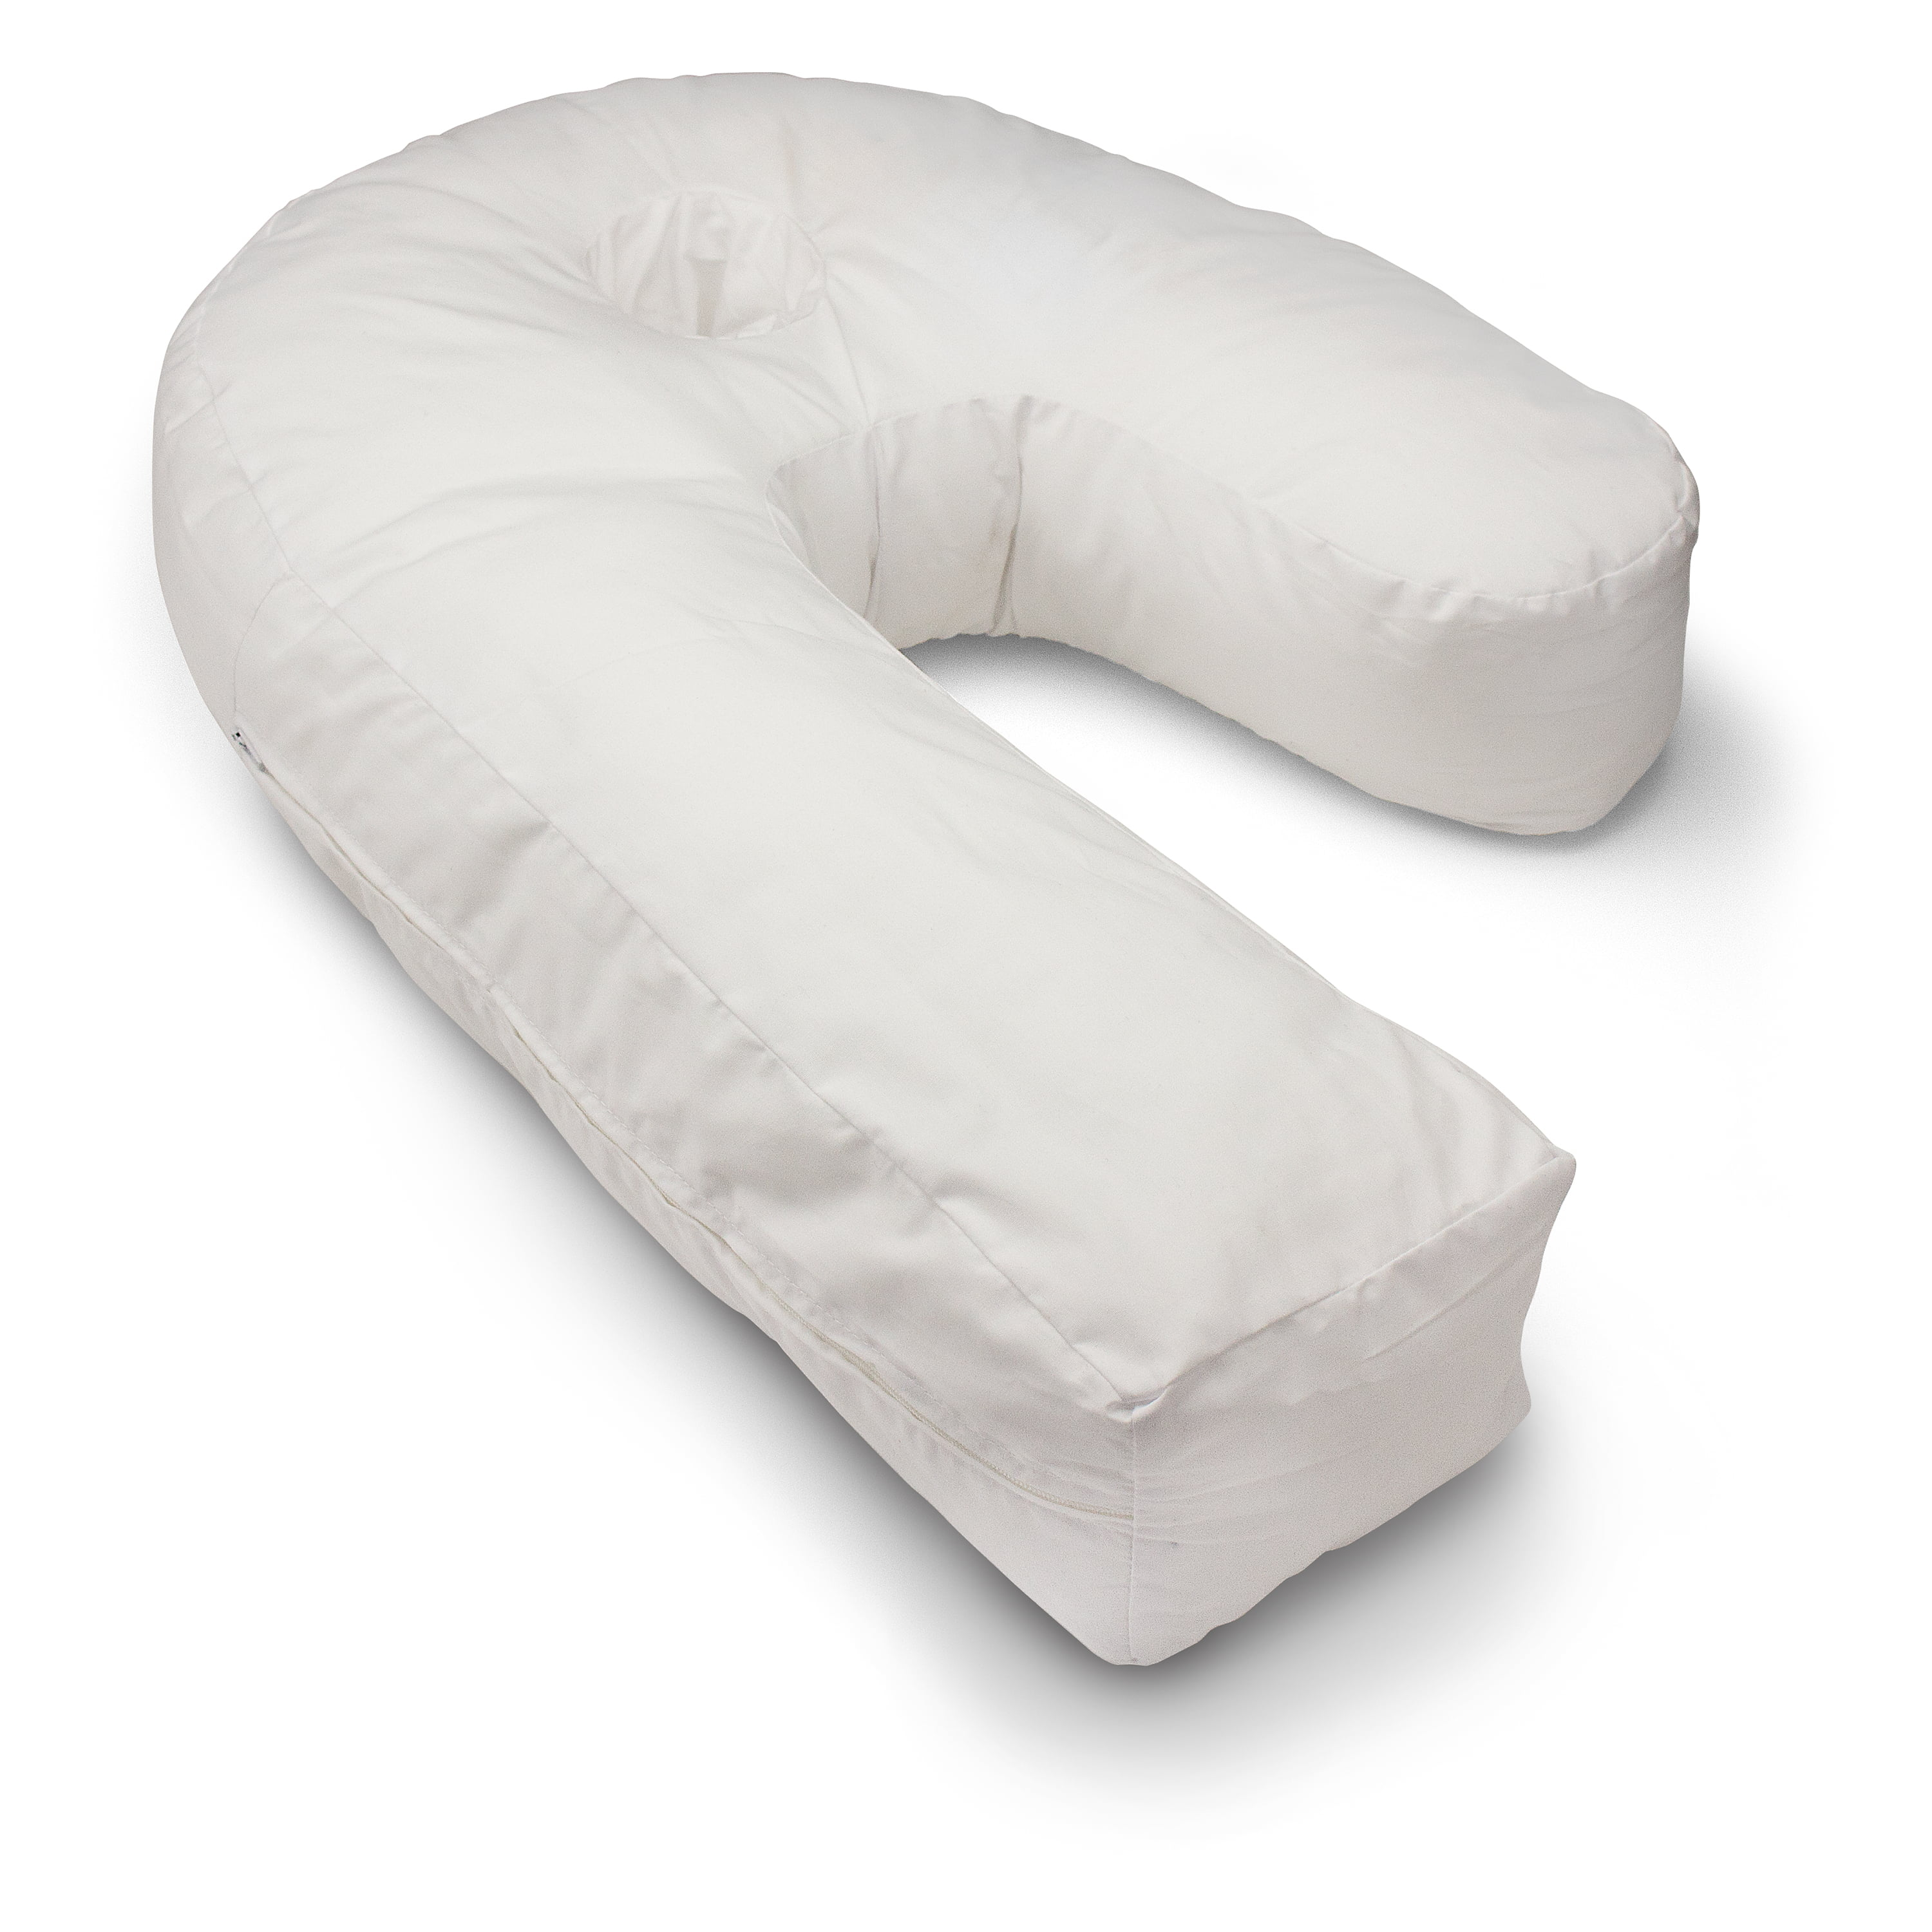 dmi side sleeper body pillow with contoured support to help eliminate neck back pain includes hypoallergenic removable washable cover firm